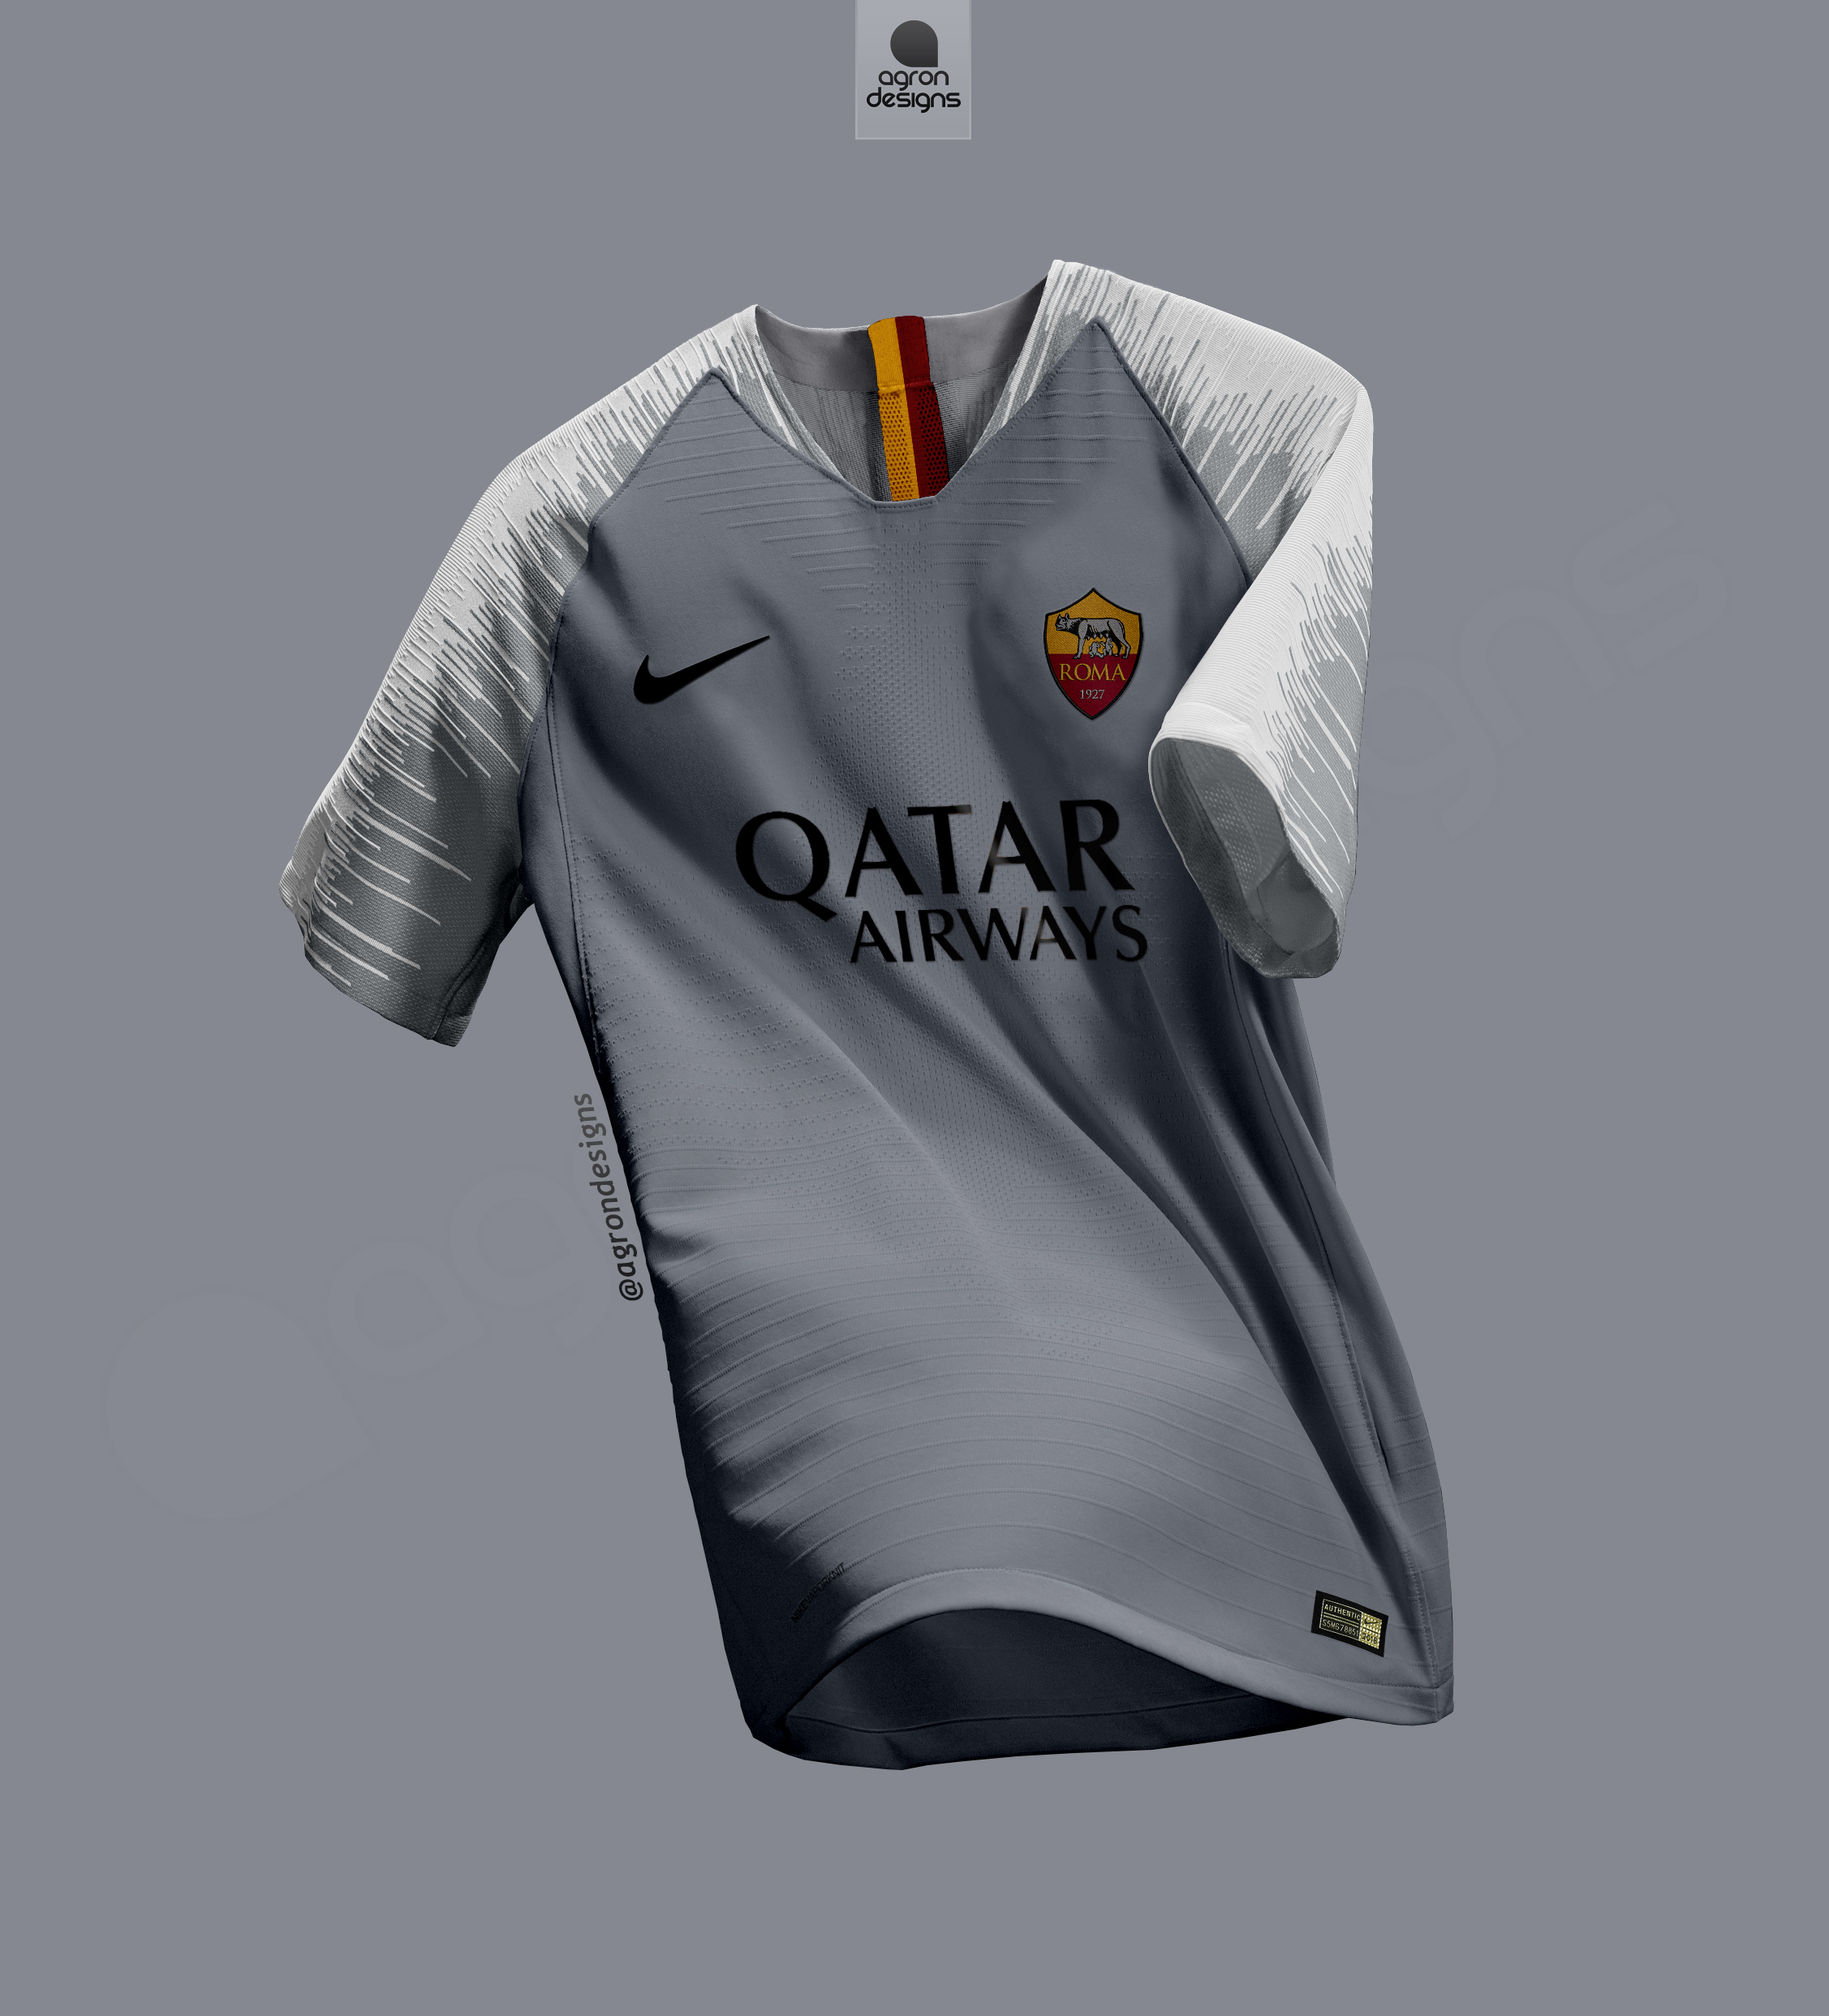 a78a1b361de NIKE AS ROMA 2018-19 AWAY KIT BASED ON LEAKED IMAGES